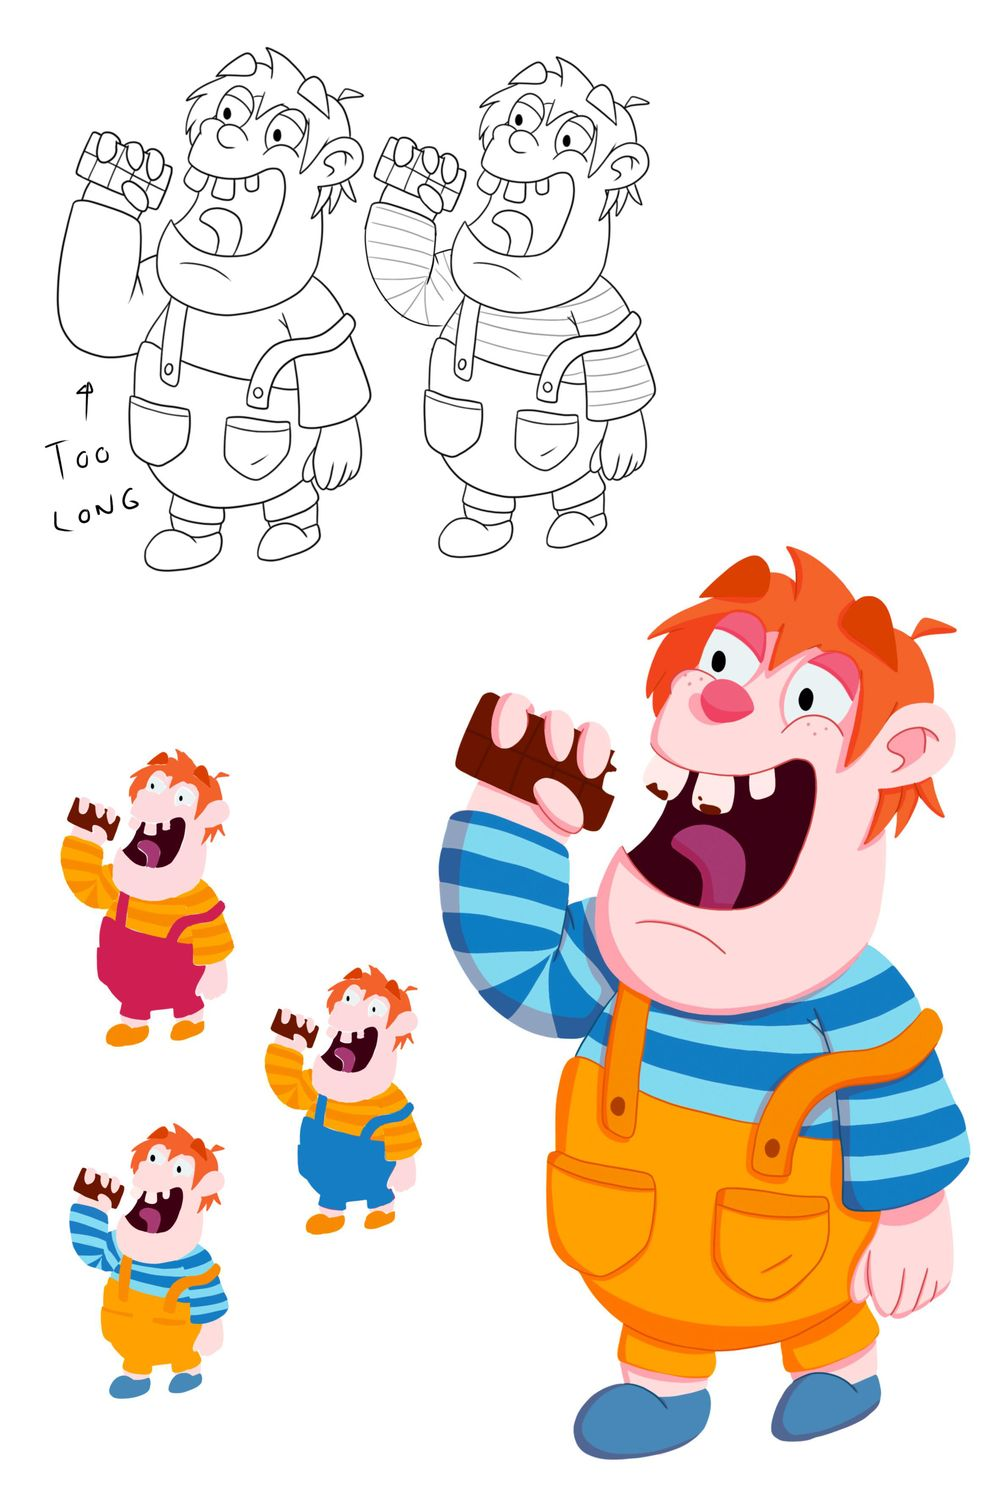 5 Boys - Character Design - image 3 - student project